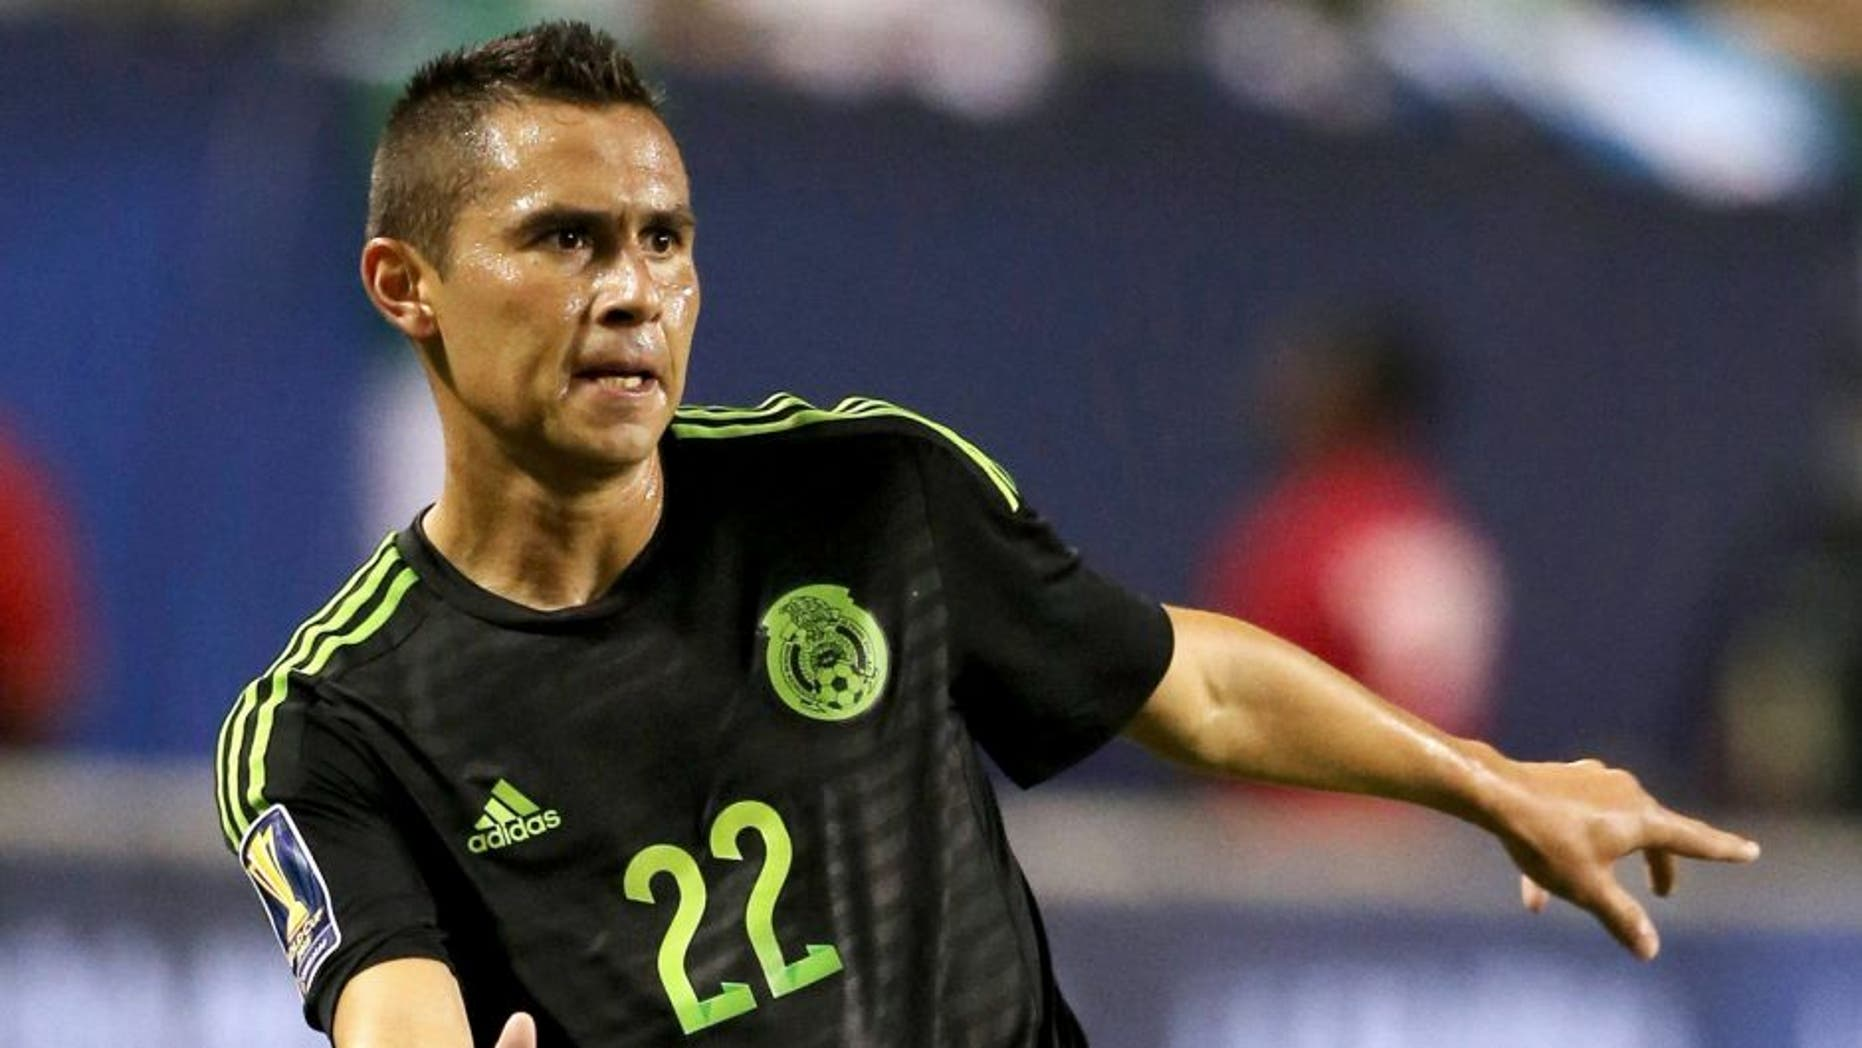 CHICAGO, IL - JULY 09: Paul Aguilar of Mexico during the CONCACAF Gold Cup match between Mexico and Cuba at Soldier Field on July 9, 2015 in Chicago, Illinois. (Photo by Matthew Ashton - AMA/Getty Images)